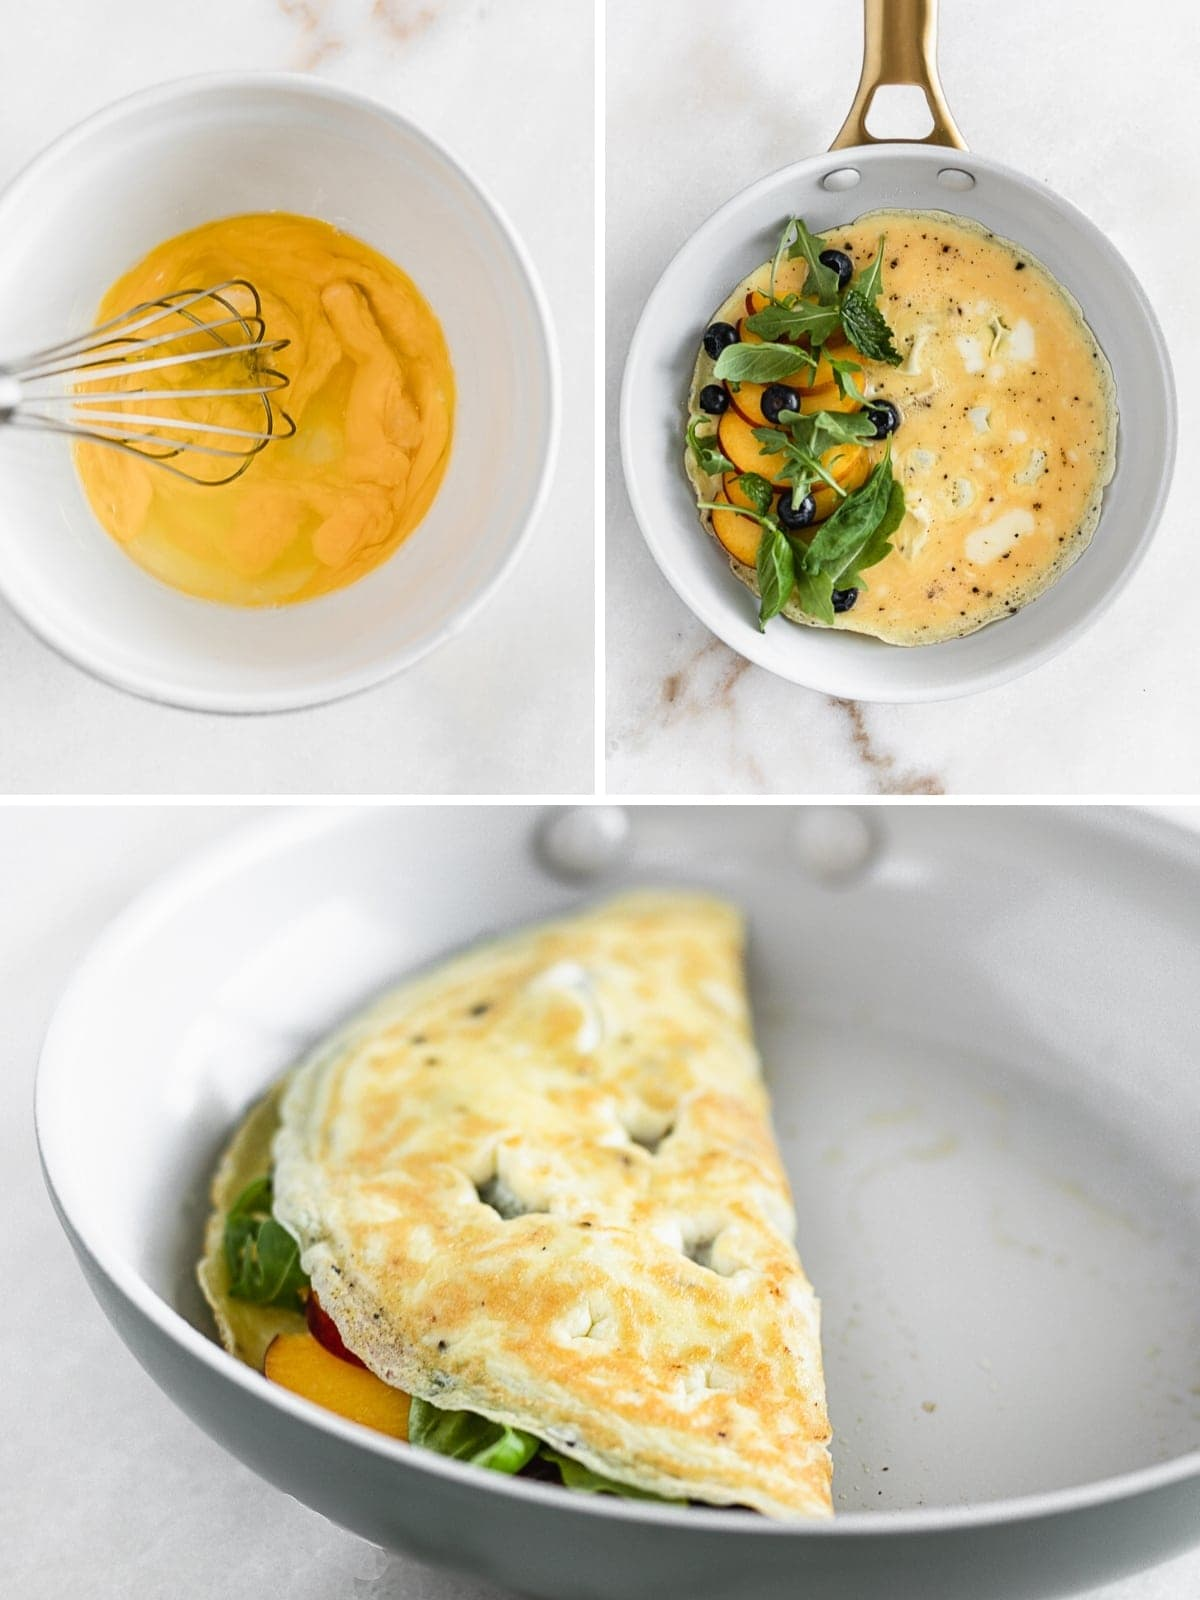 A Peach, Blueberry and Arugula Omelet is an easy, healthy omelet made with summer fruit and spicy arugula for a healthy meal any time of day! (gluten-free, vegetarian) | via livelytable.com